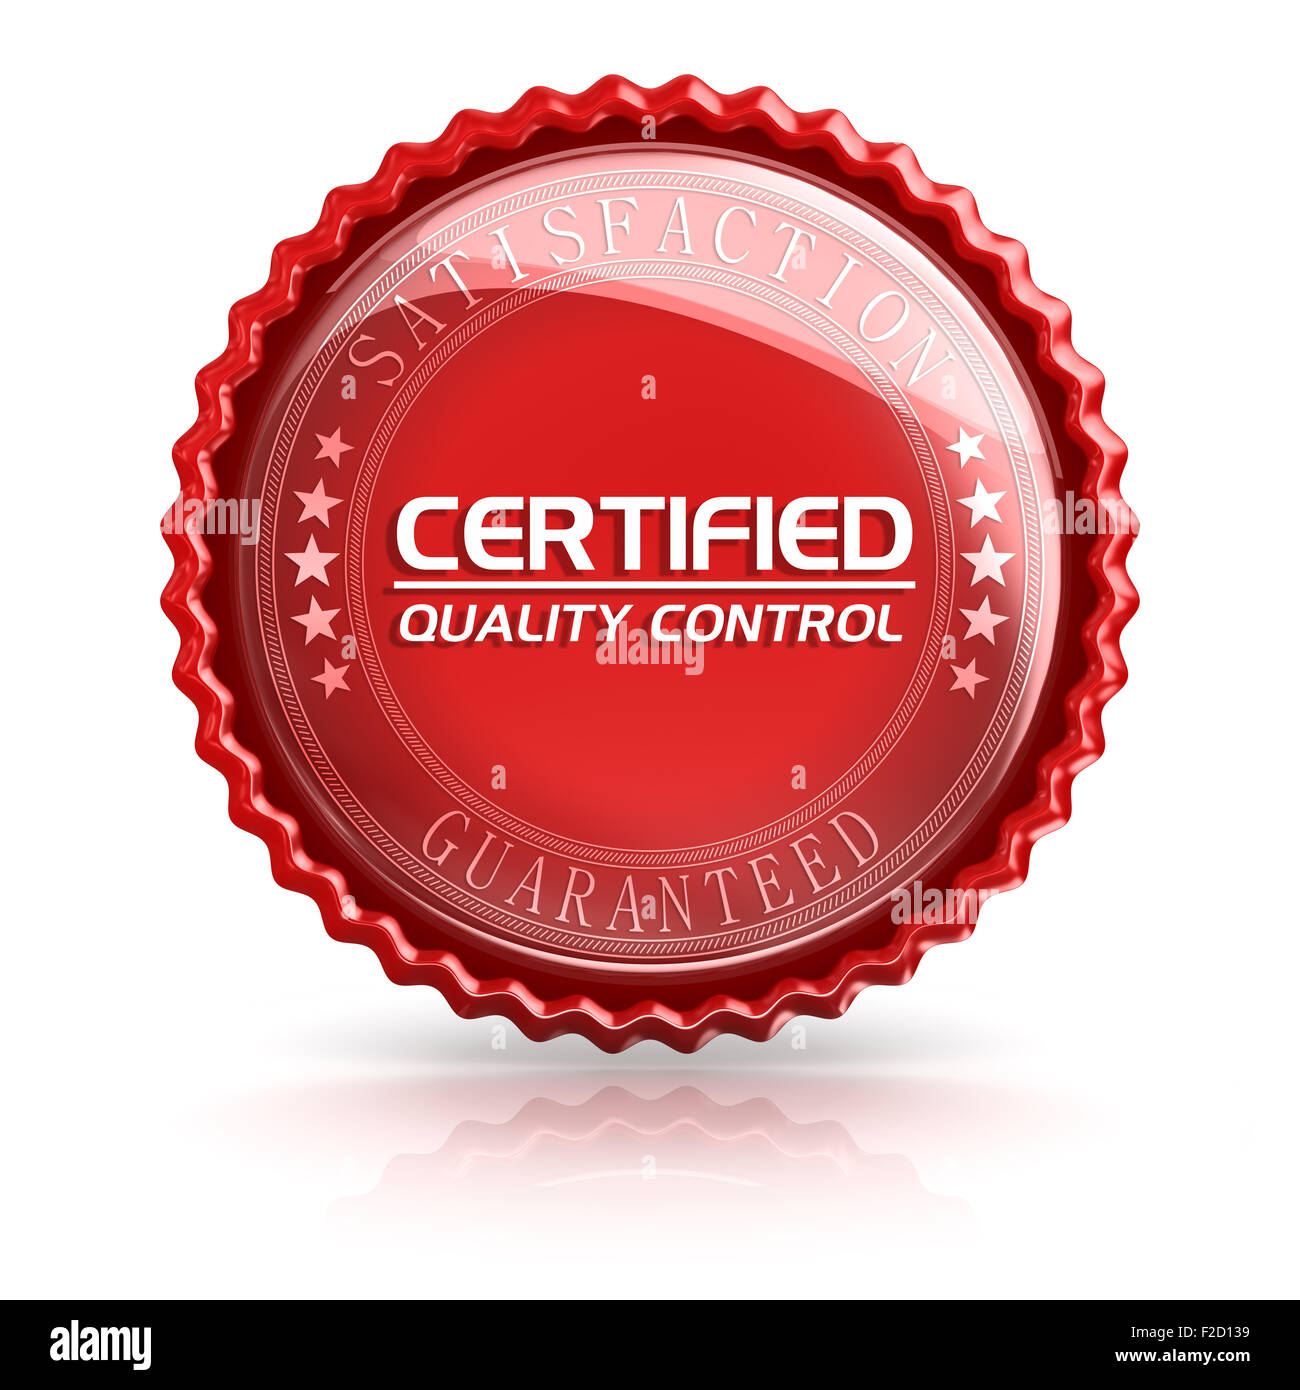 Certified quality control , 3d rendered image. - Stock Image